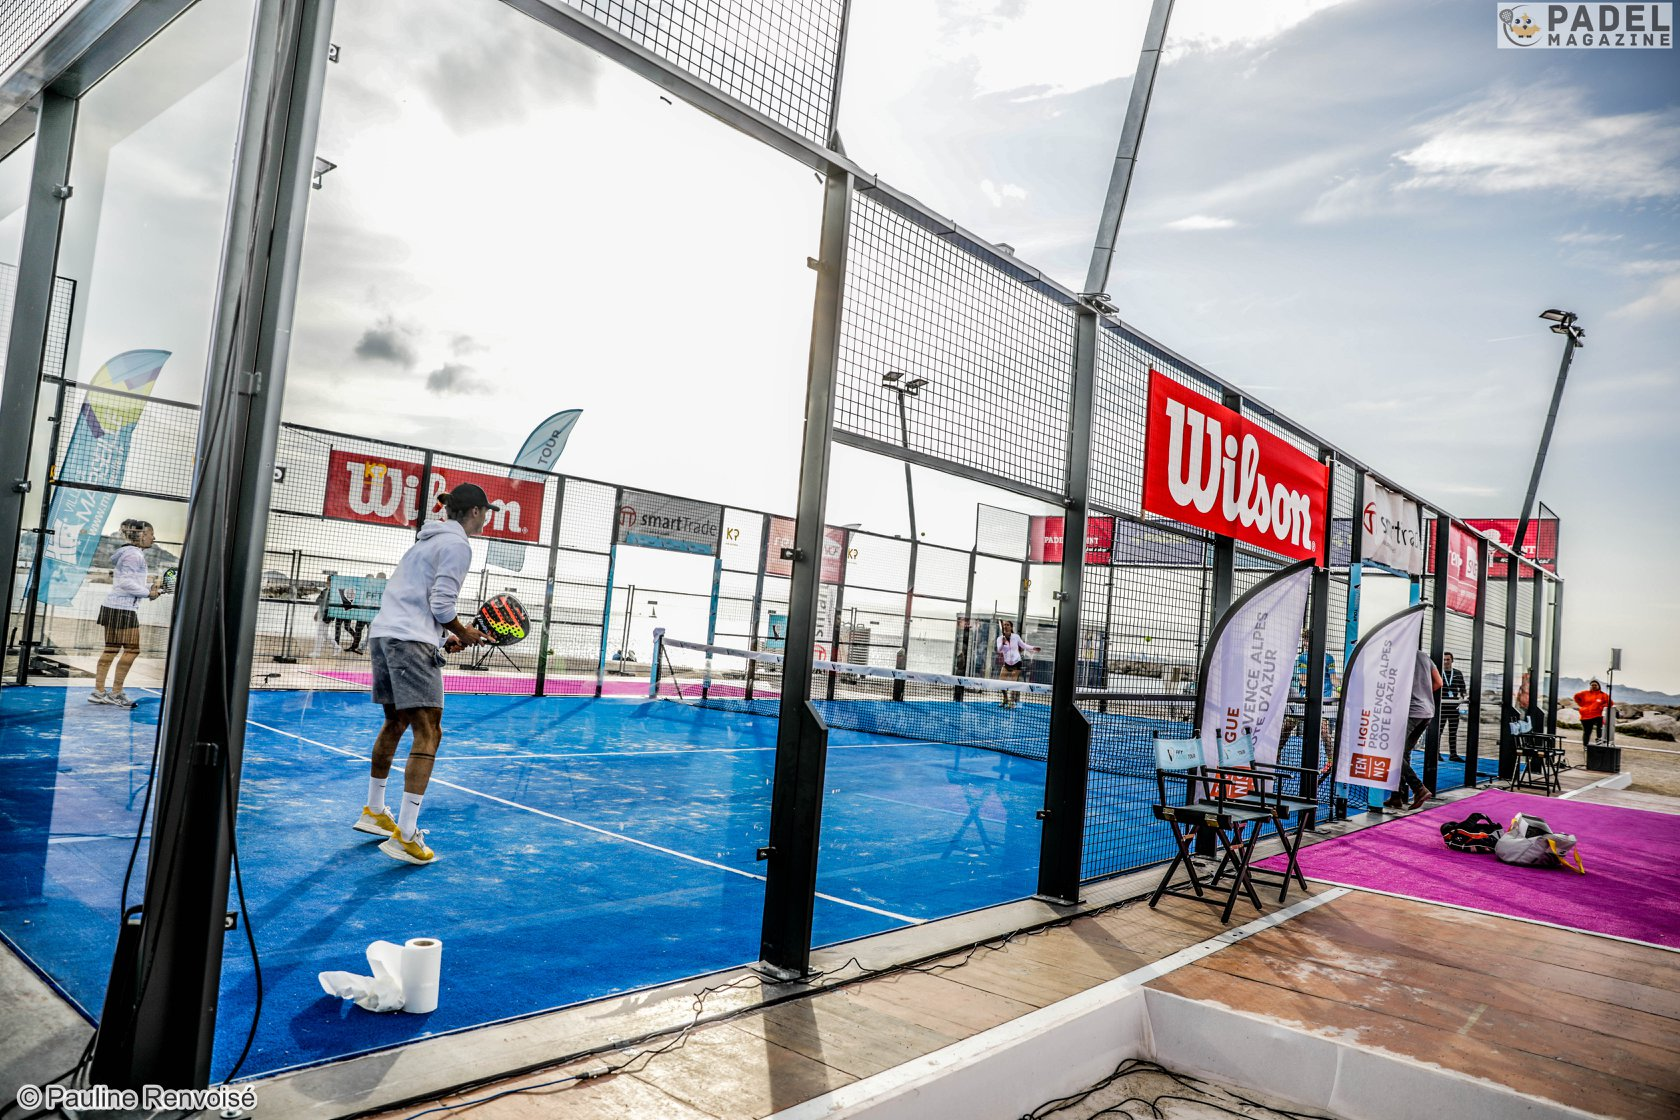 FFT PADEL TOUR 2021 will hurt!